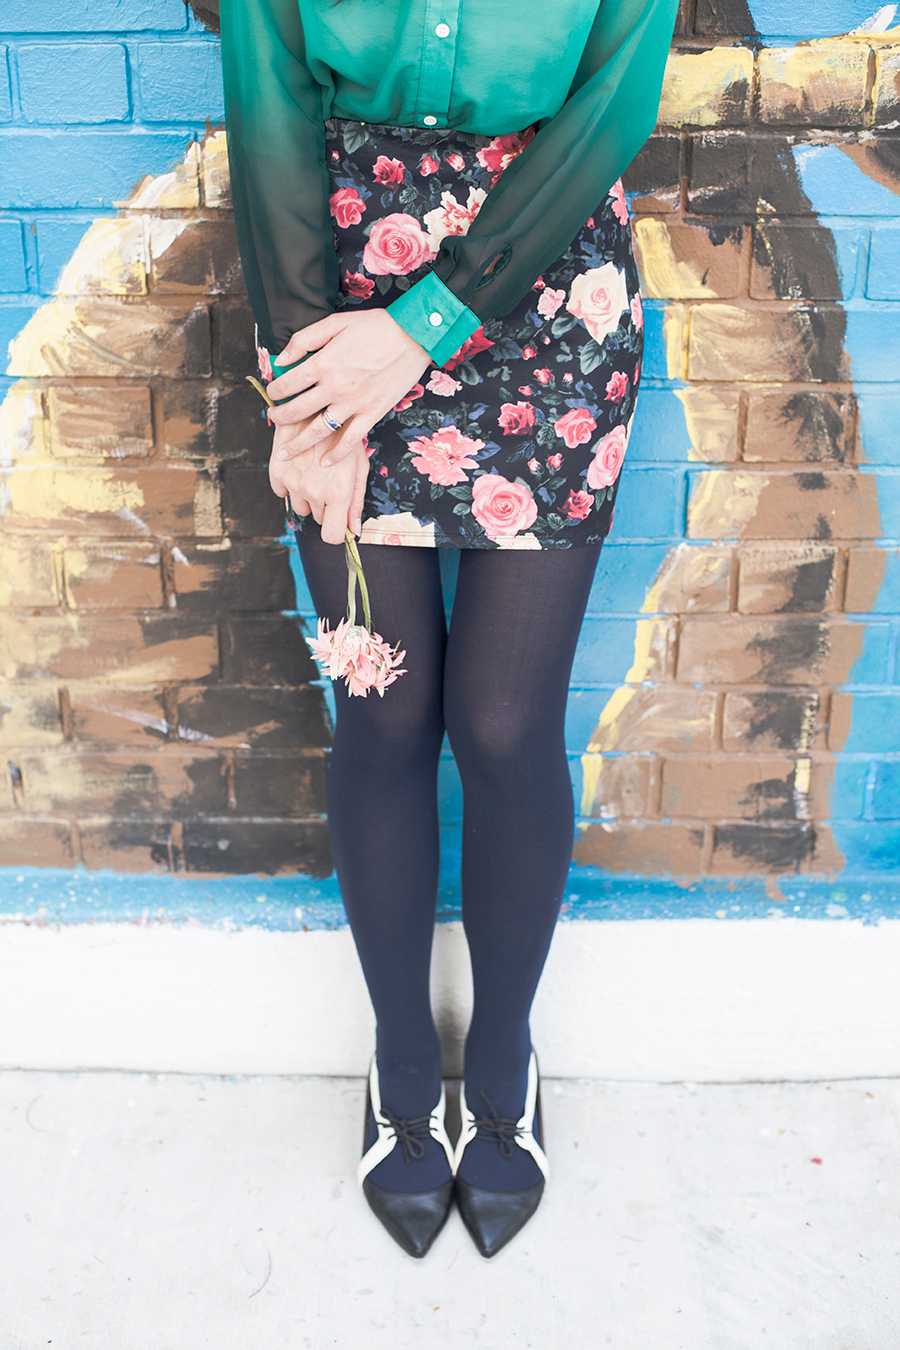 Holding onto pink flowers in a floral ootd.